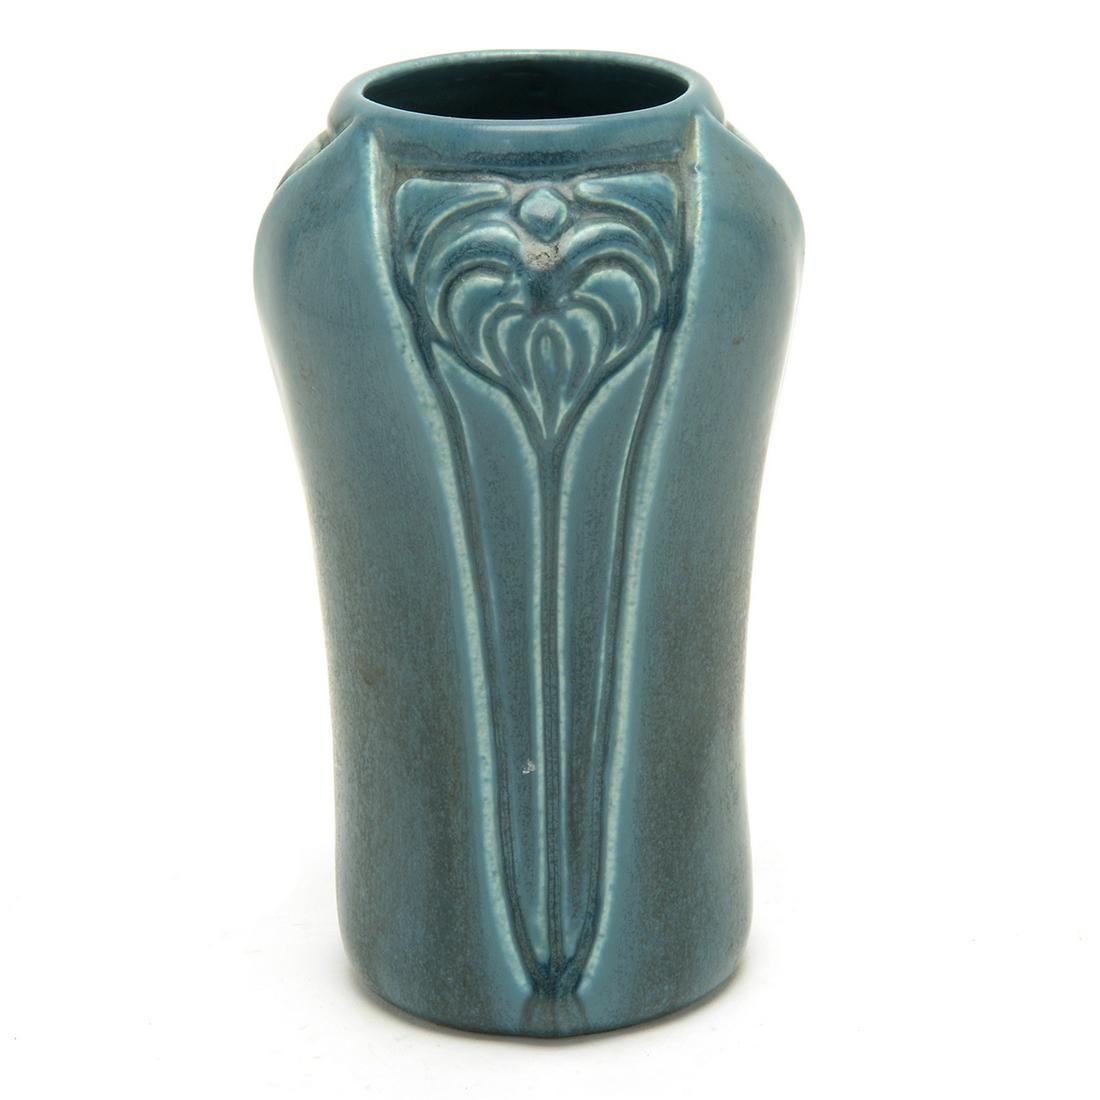 Rookwood Pottery Teal Blue Vase, 1928 2141.